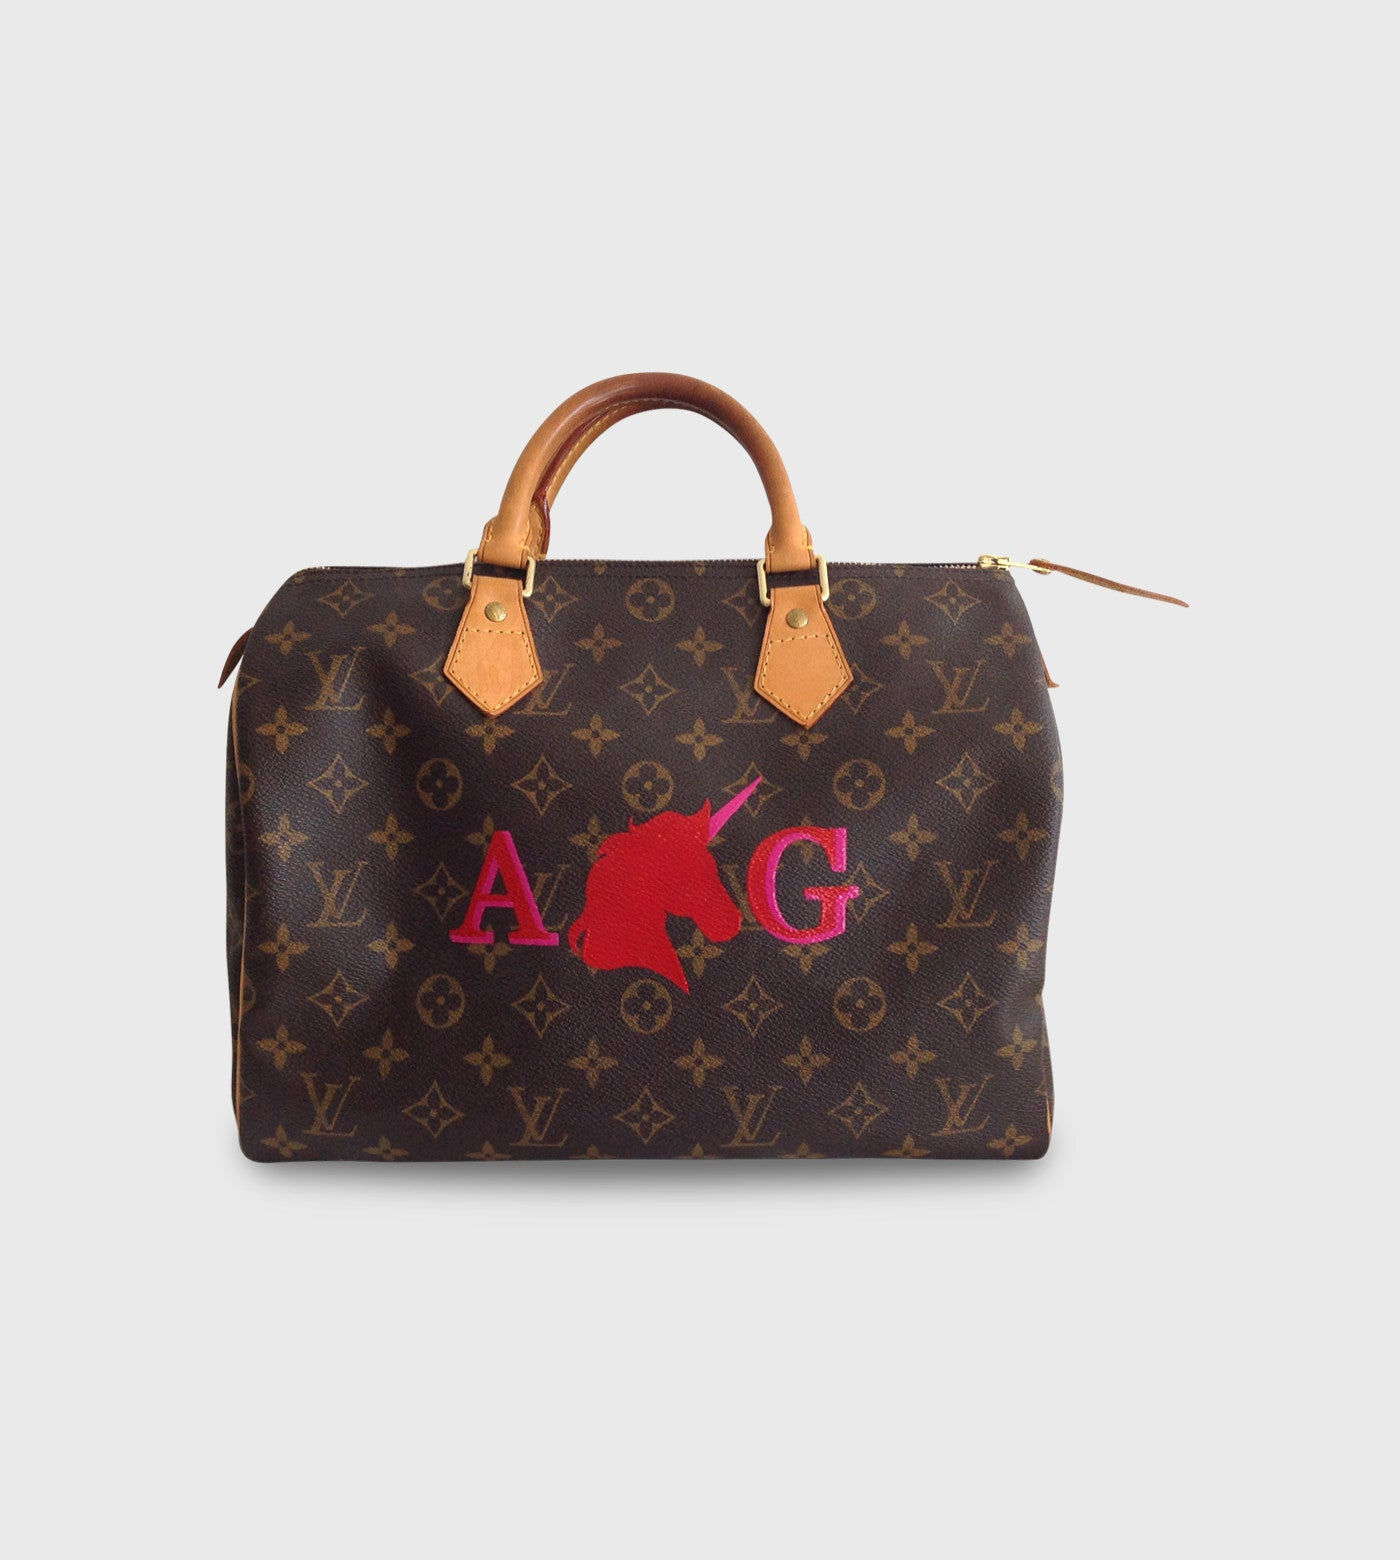 Louis Vuitton Speedy / Symbol + Monograms